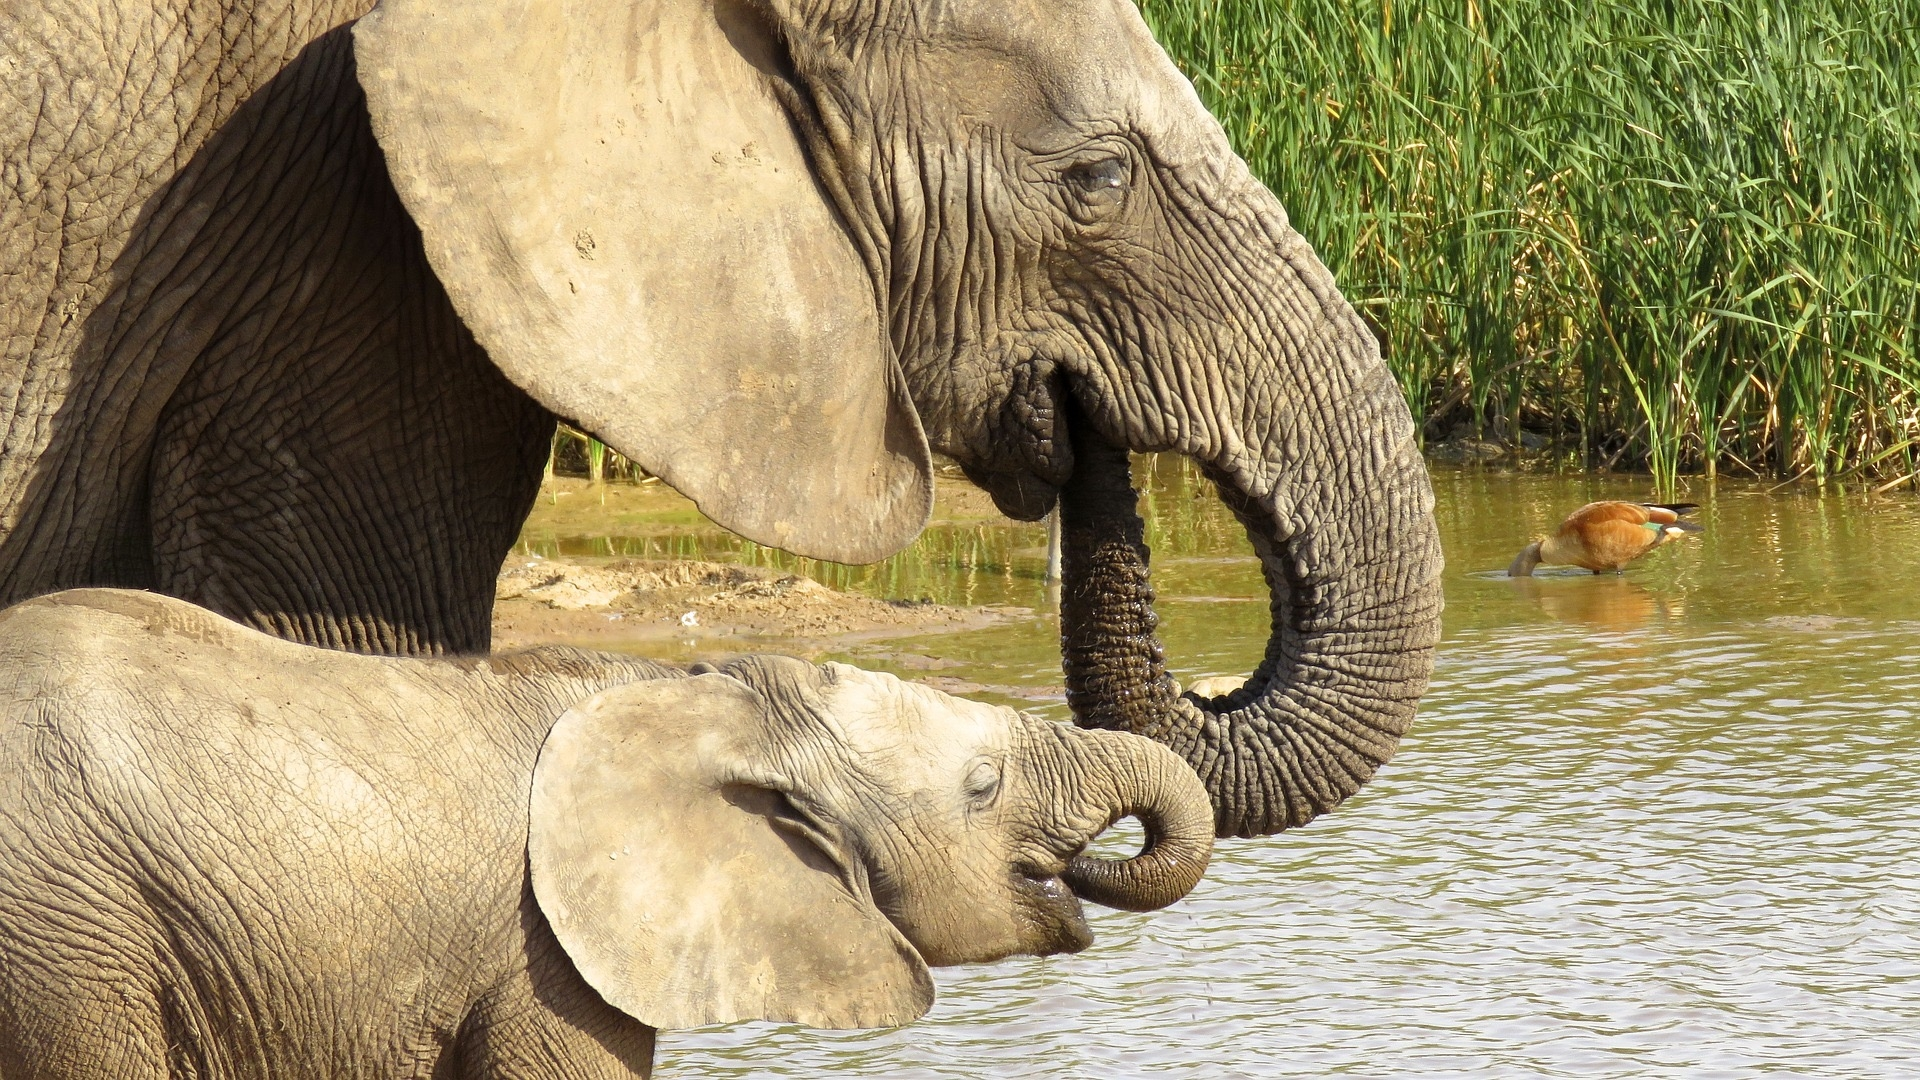 elephant taking a drink of water